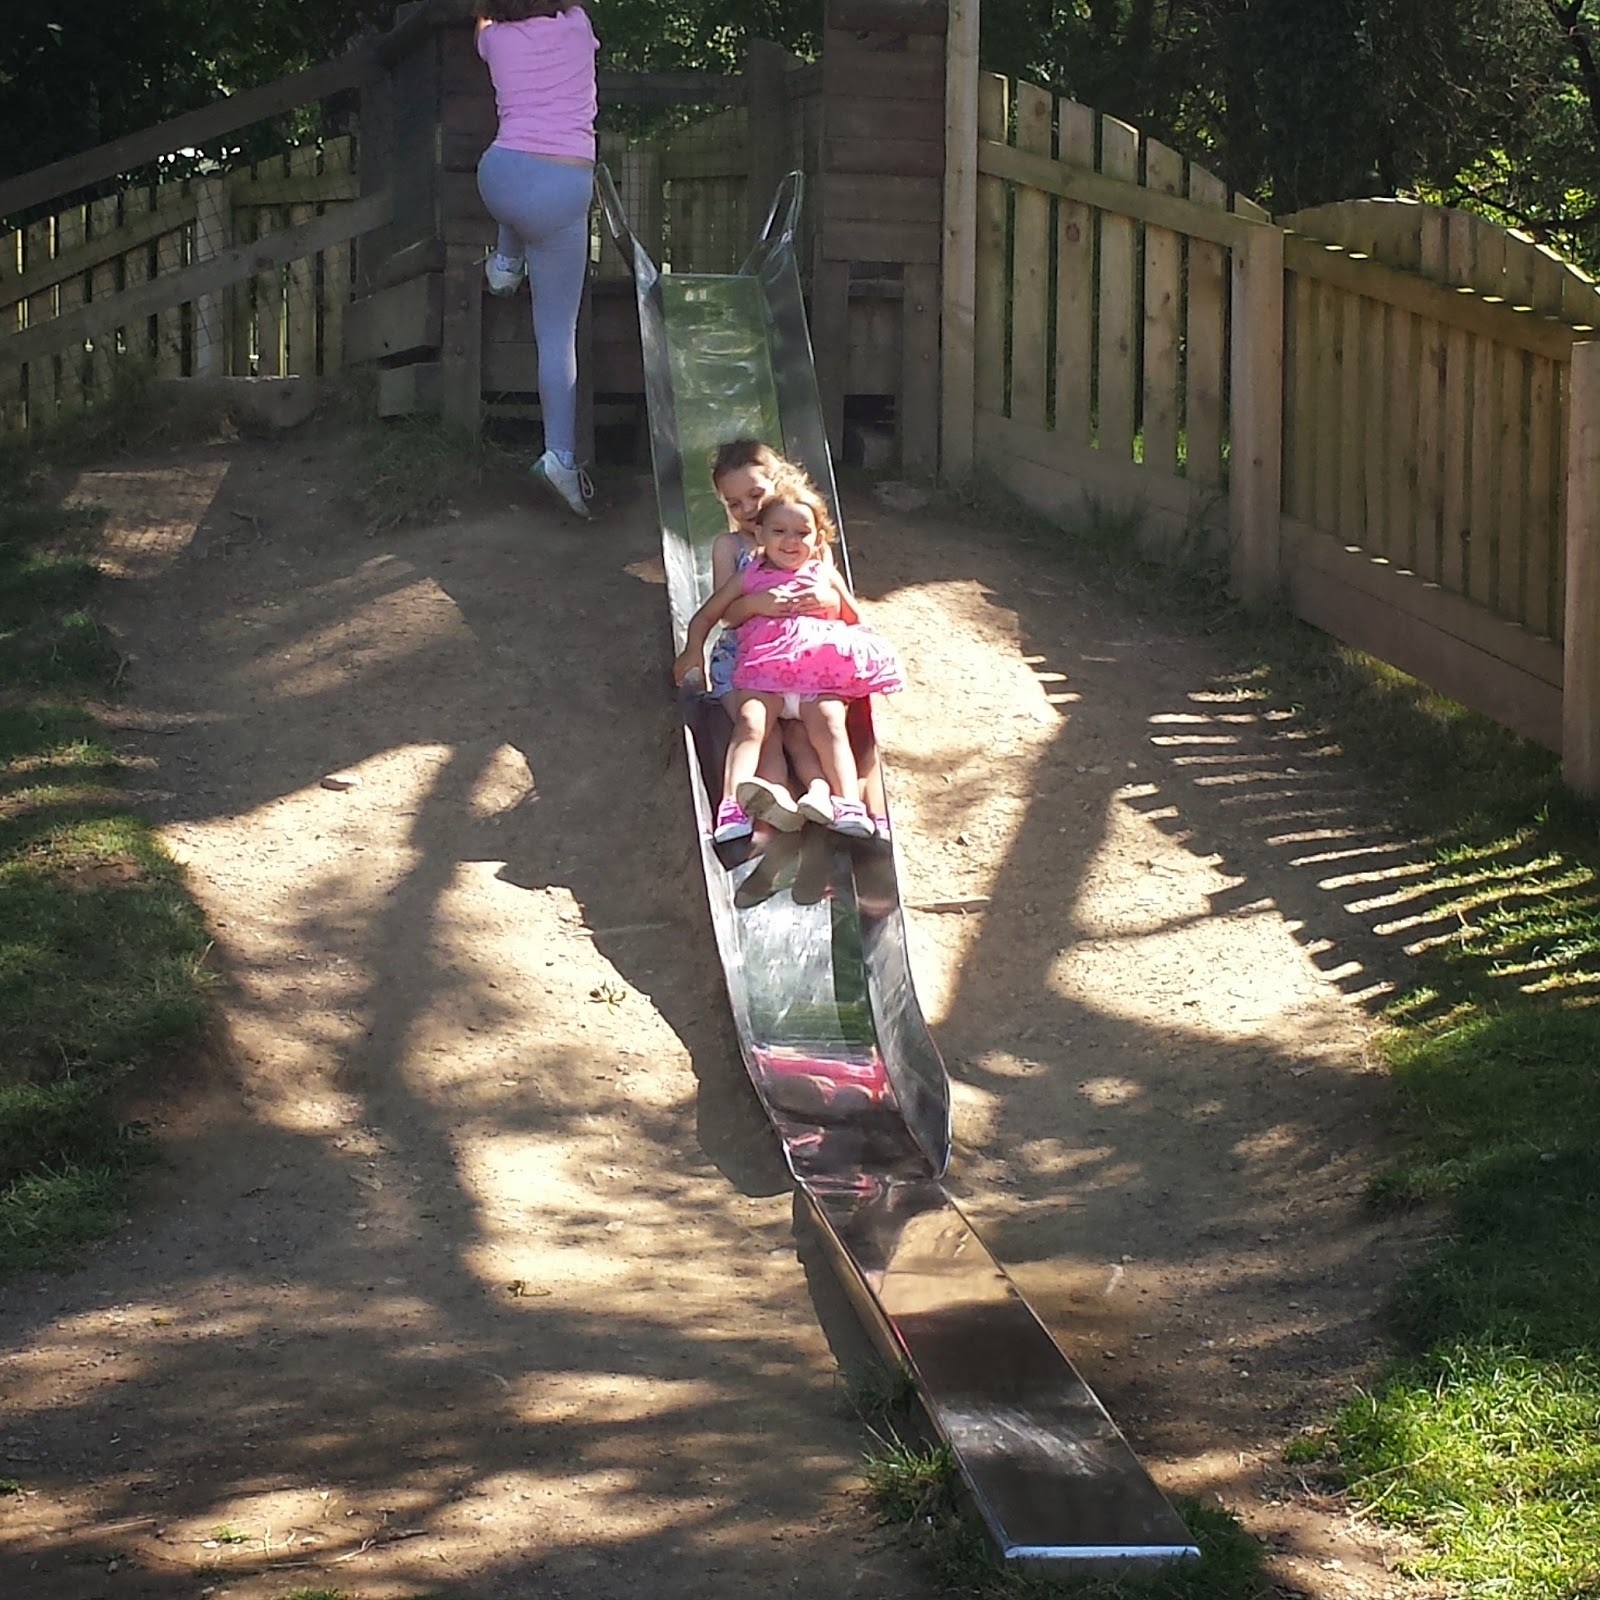 Scolton Manor Family Fun Country Kids pembrokeshire Wales Day Out Trip